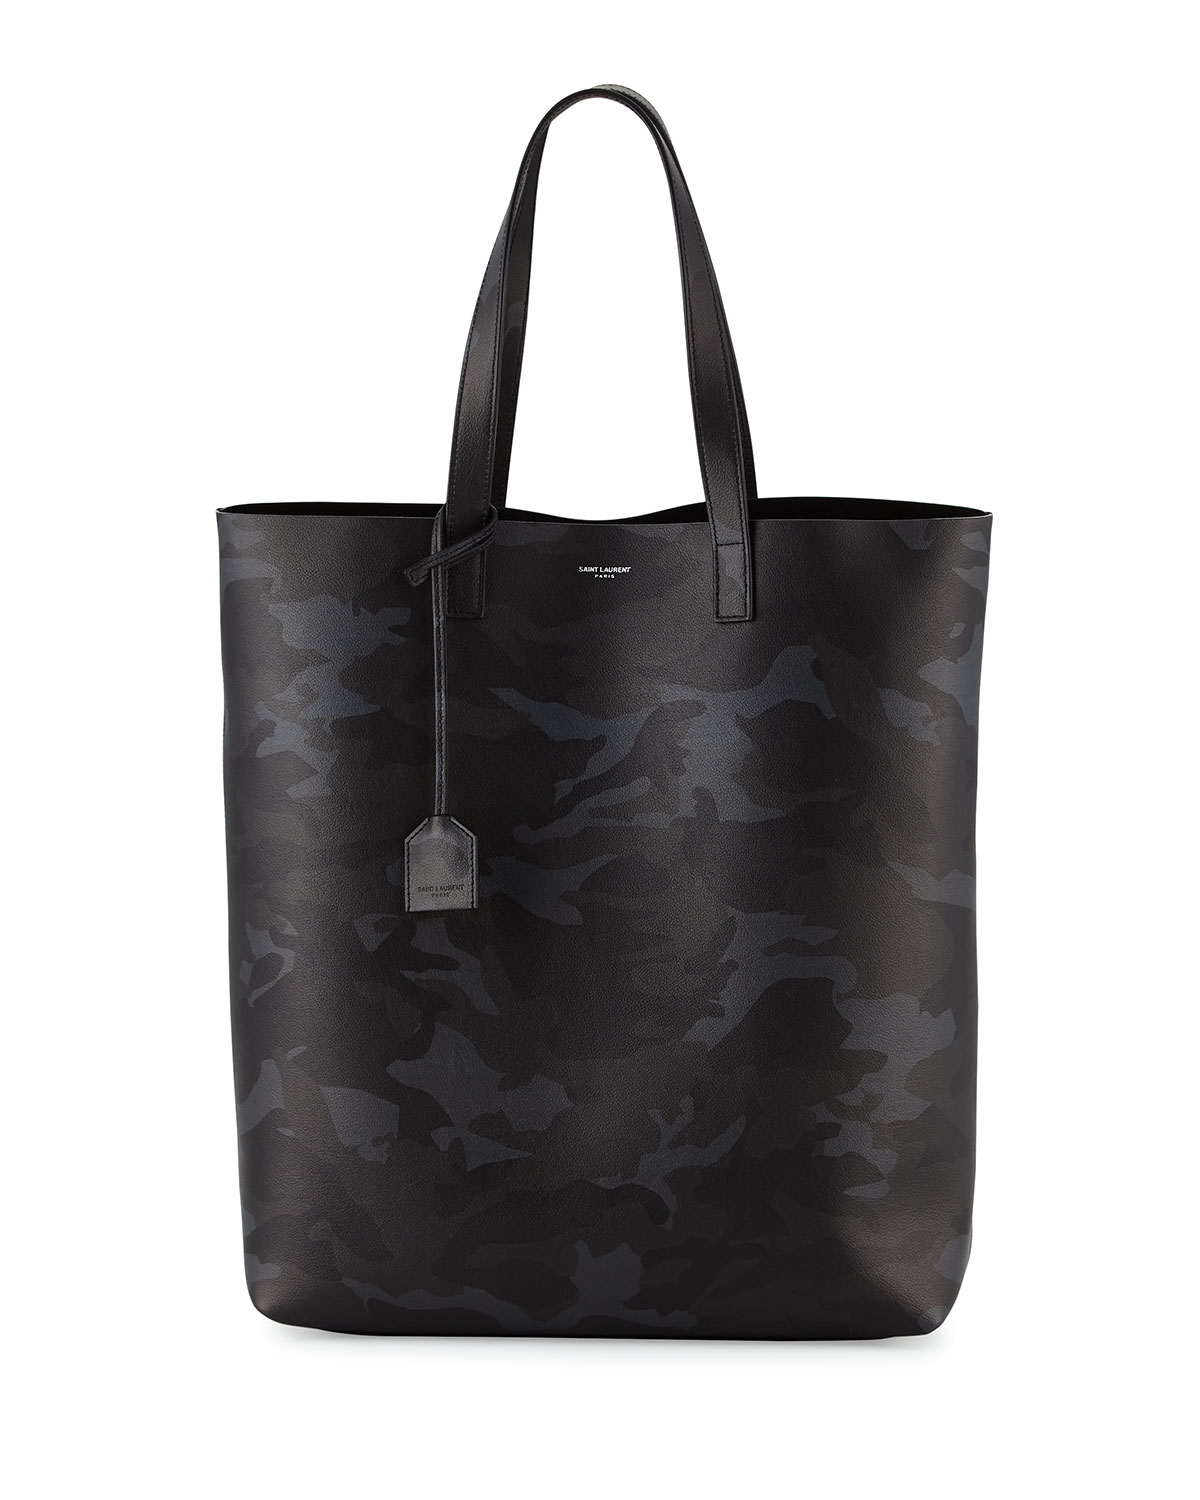 70bbfd30a1f Saint Laurent Men's Camouflage Leather Tote Bag, Black | Neiman Marcus